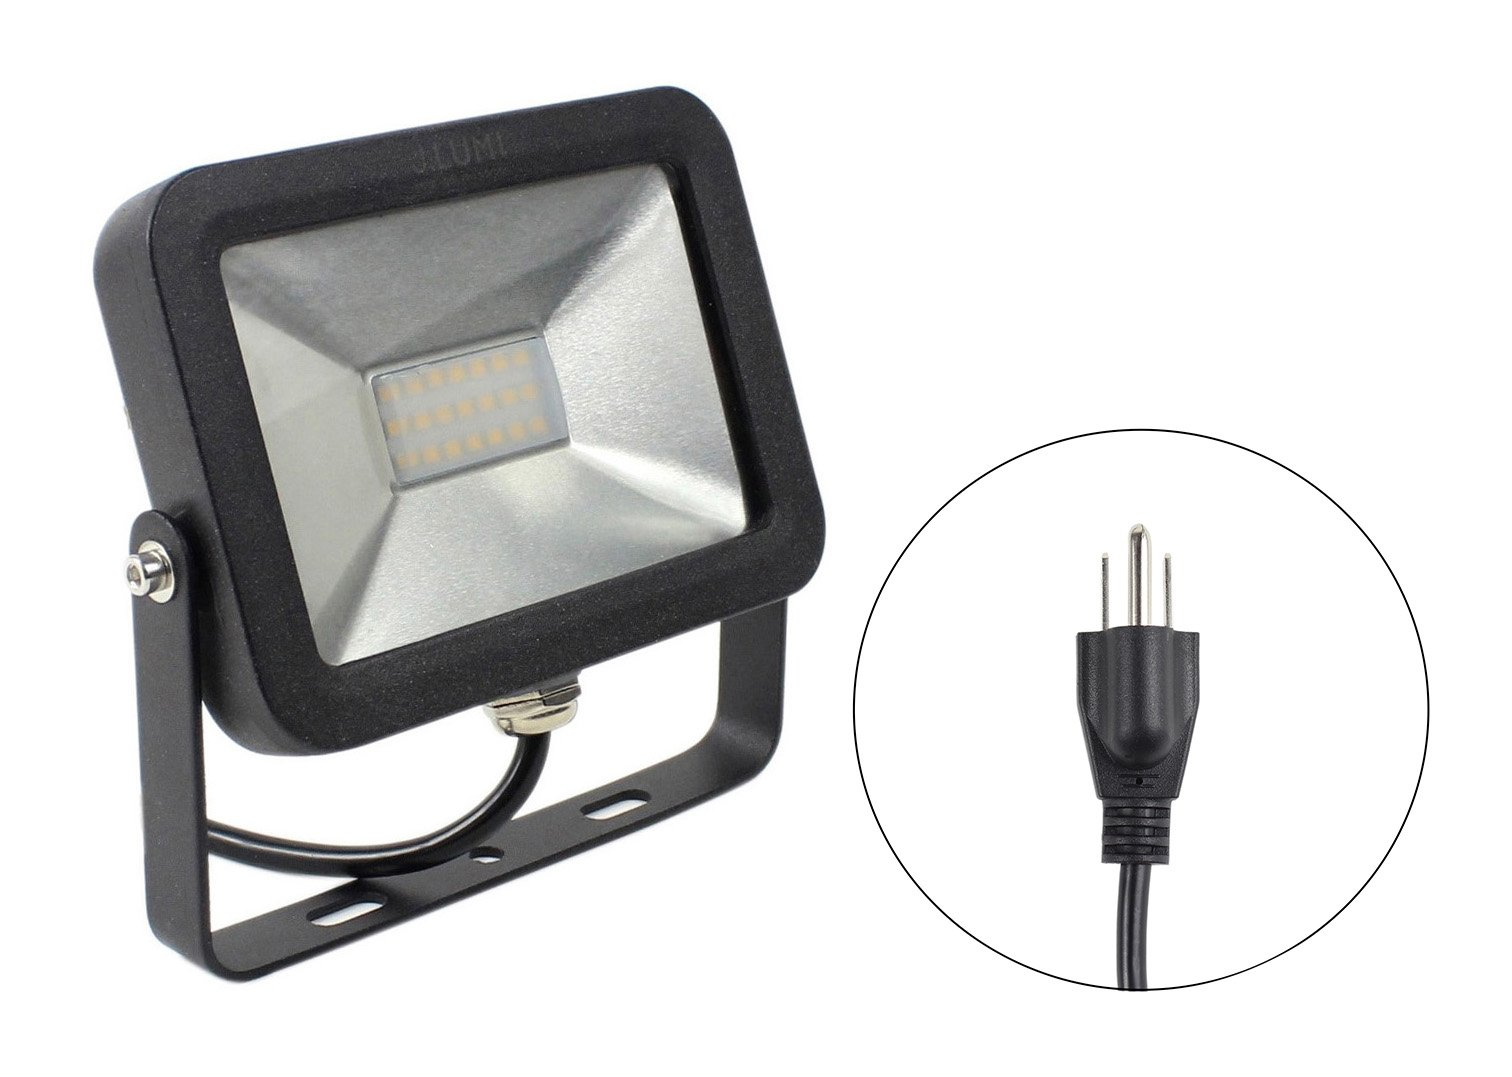 J.LUMI FLS0010 LED Flood Light 10W, New Generation Flood Light, 75W Halogen Replacement, AC 120V, 3000K Warm White, 3-ft Cord with 3 Prong Power Plug (UL listed)